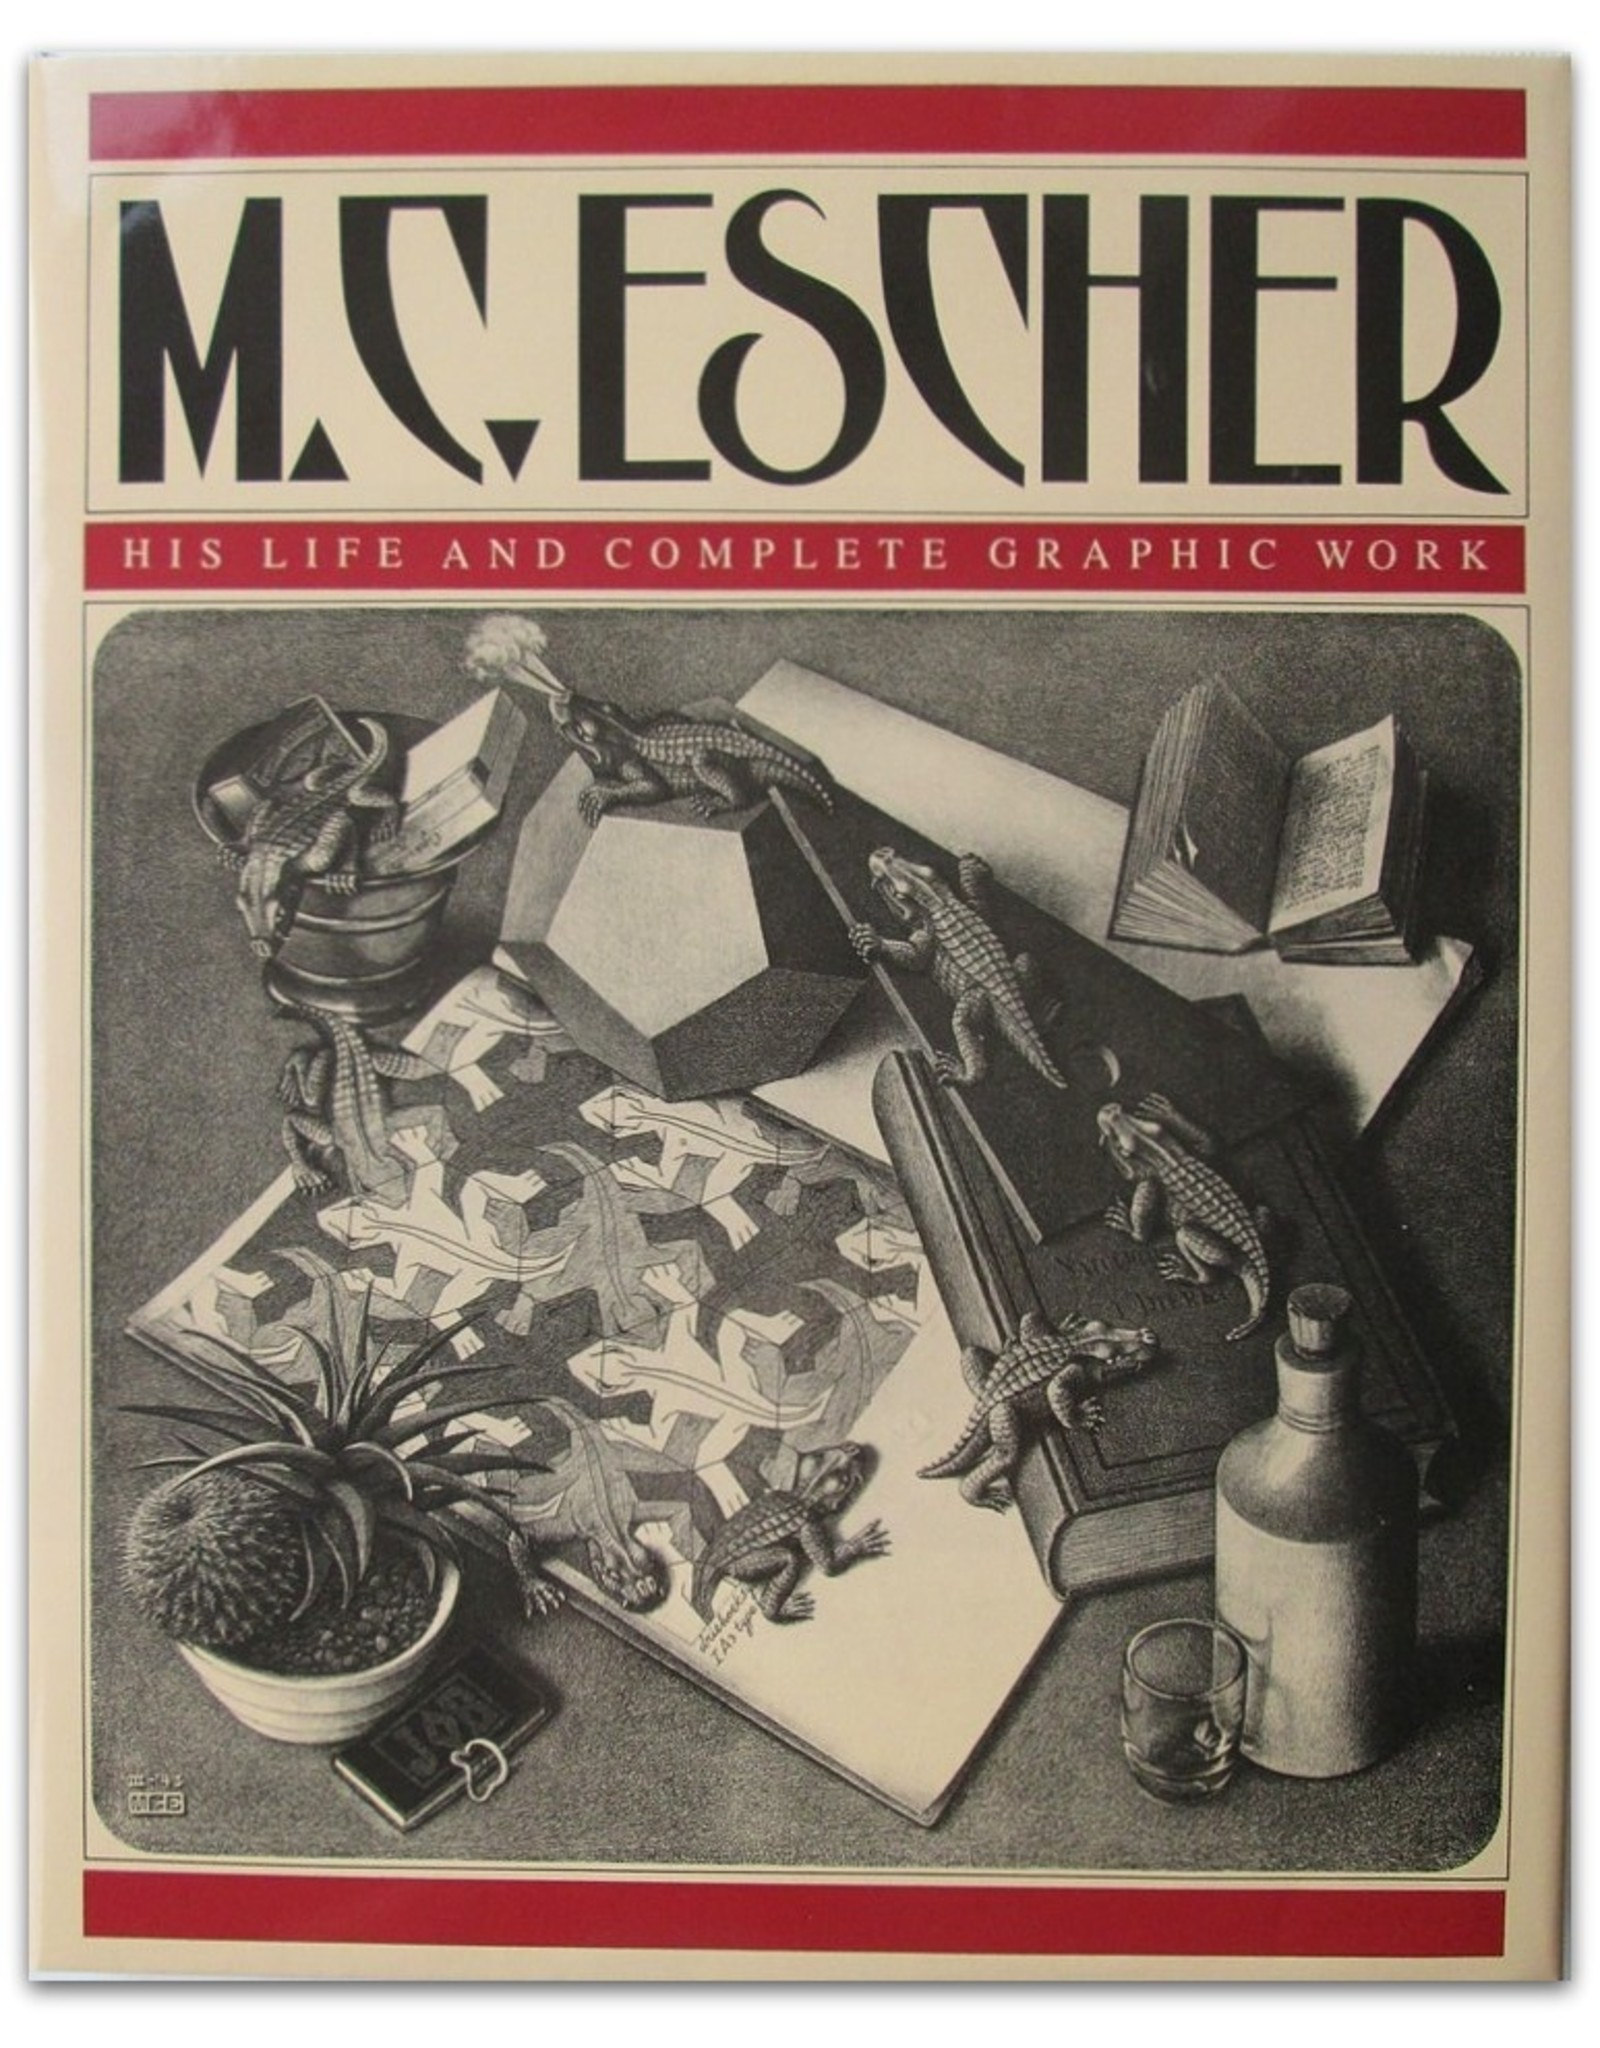 M.C. Escher : His Life and Complete Graphic Work. With a Fully Illustrated Catalogue. With Essays by Bruno Ernst [and] M.C. Escher